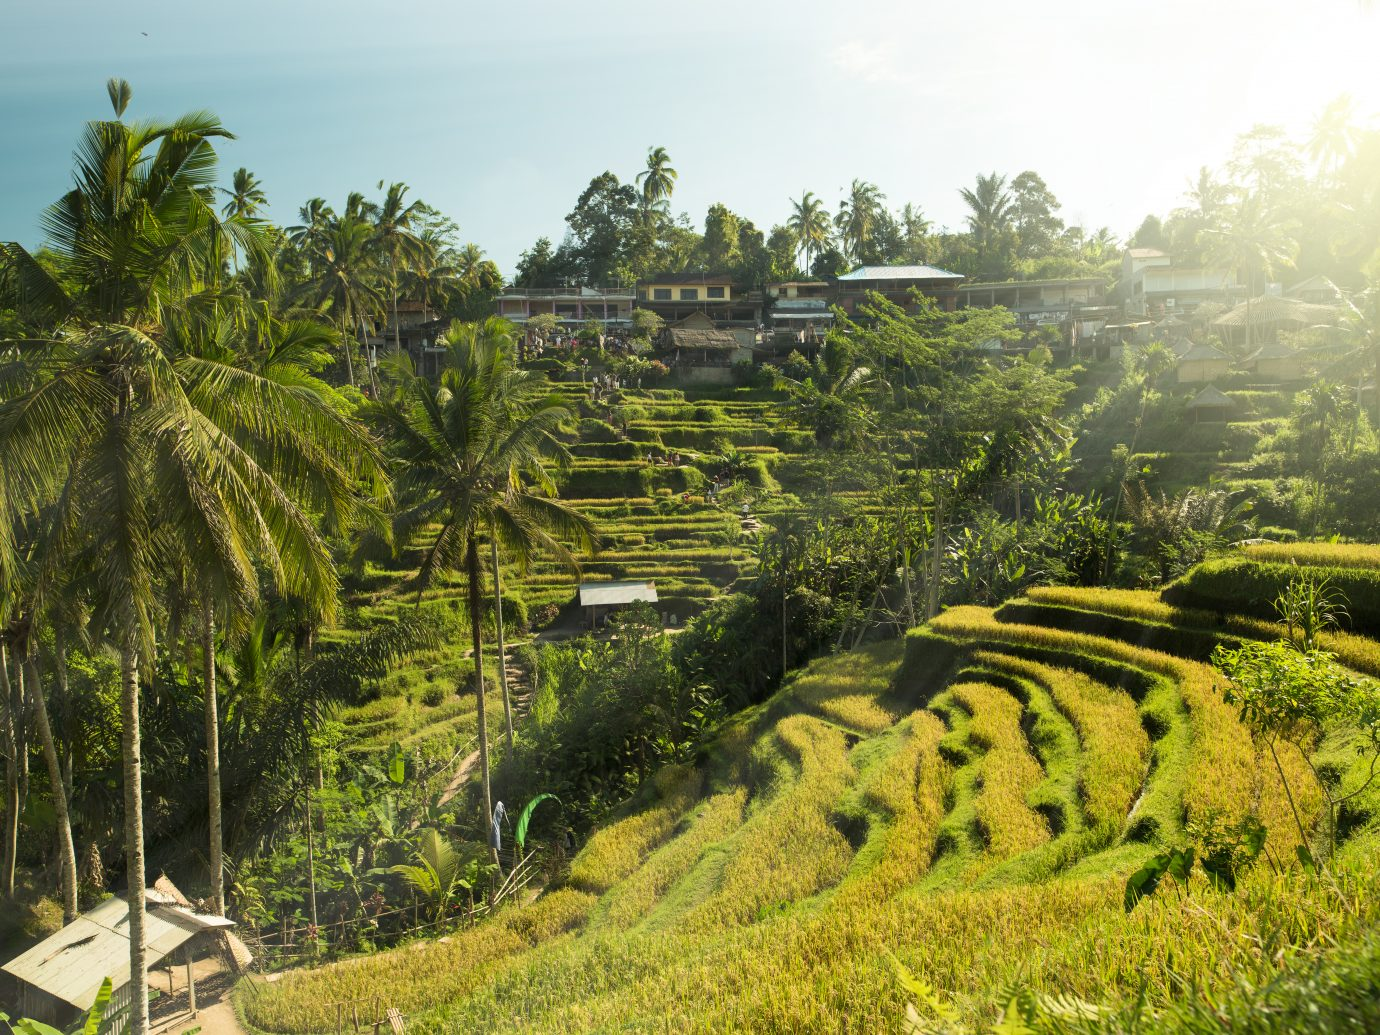 Beautiful rice terraces in the morning light near Tegallalang village, Ubud, Bali